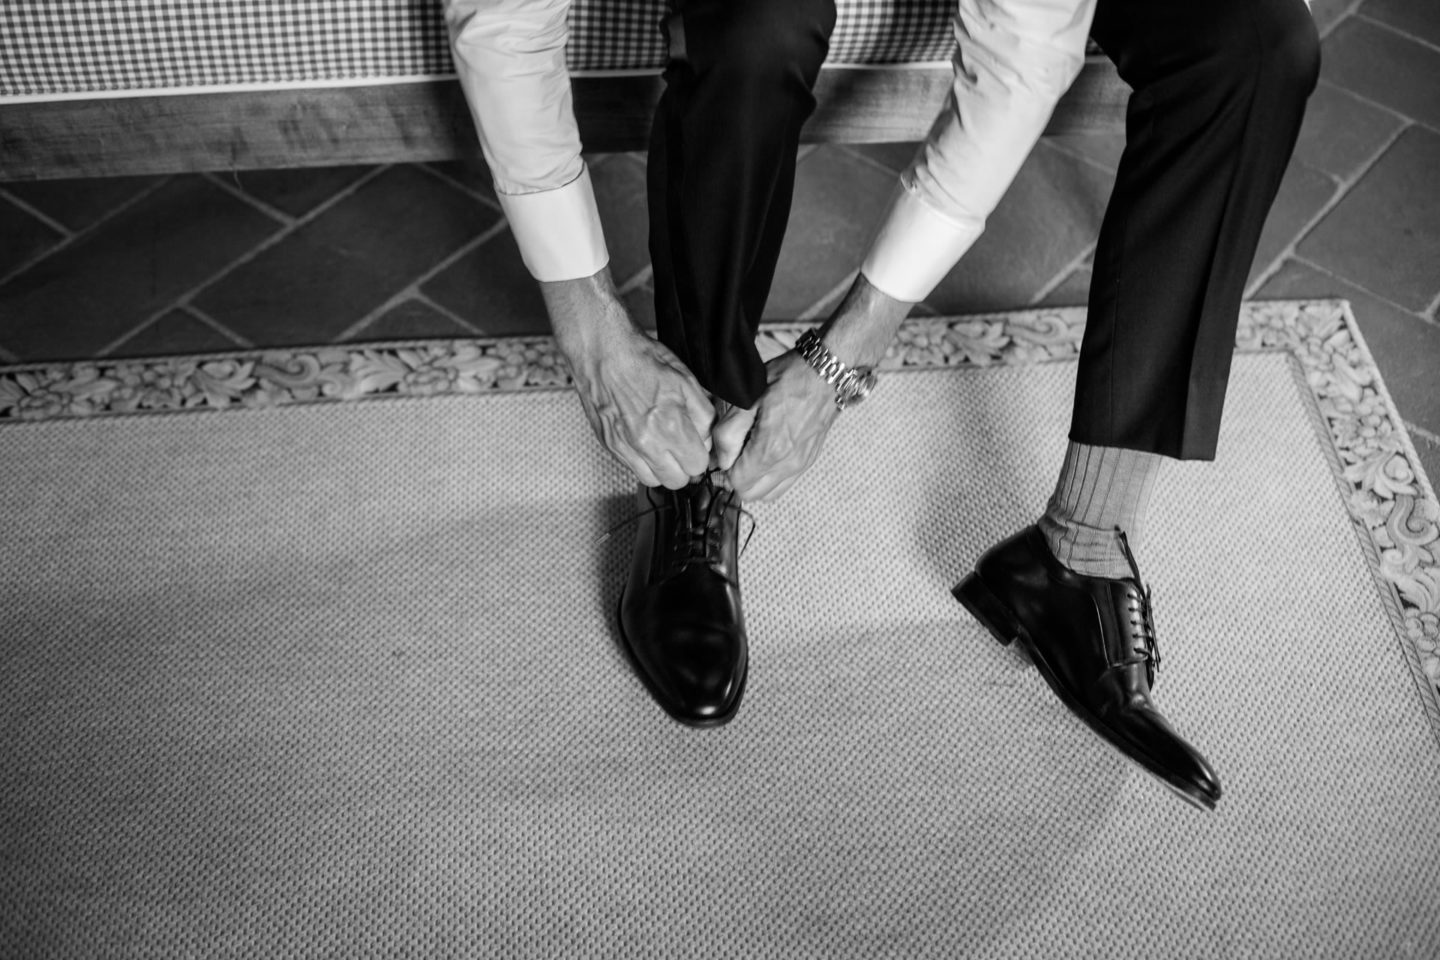 Shoes :: Exciting wedding in the countryside of Siena :: Luxury wedding photography - 4 :: Shoes